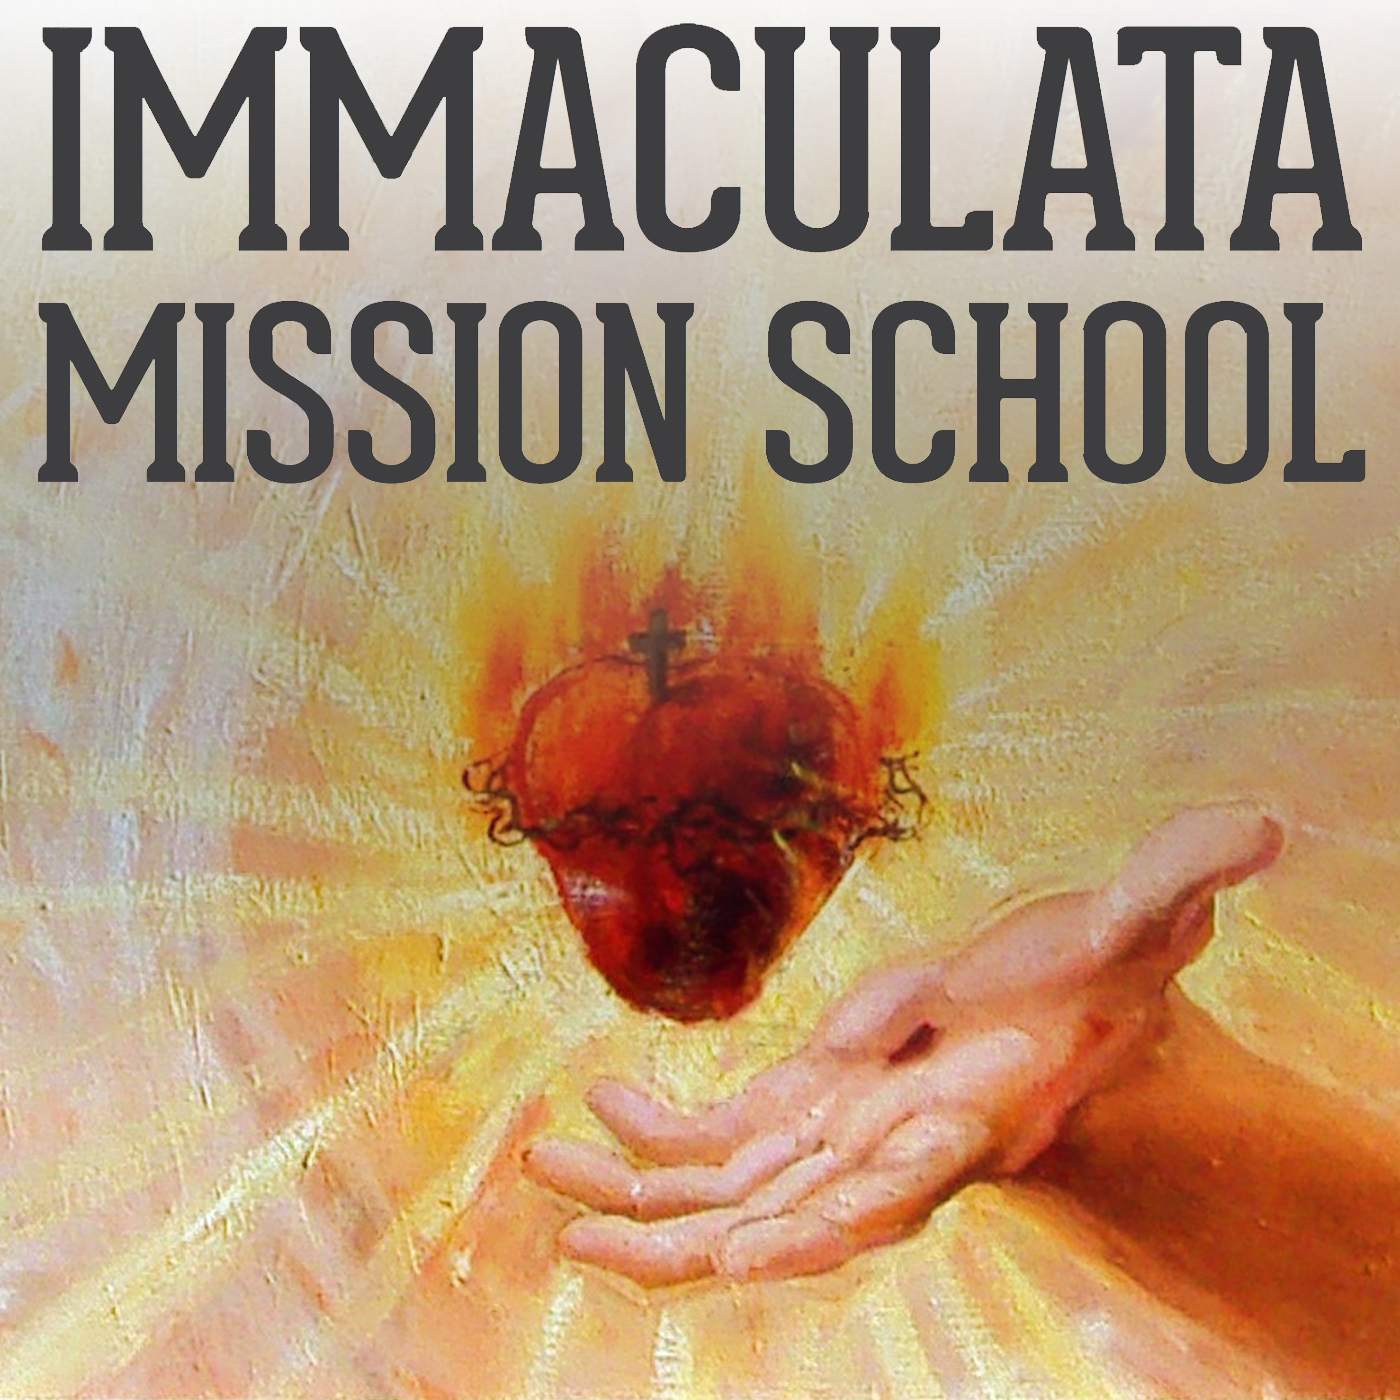 Immaculata Mission School